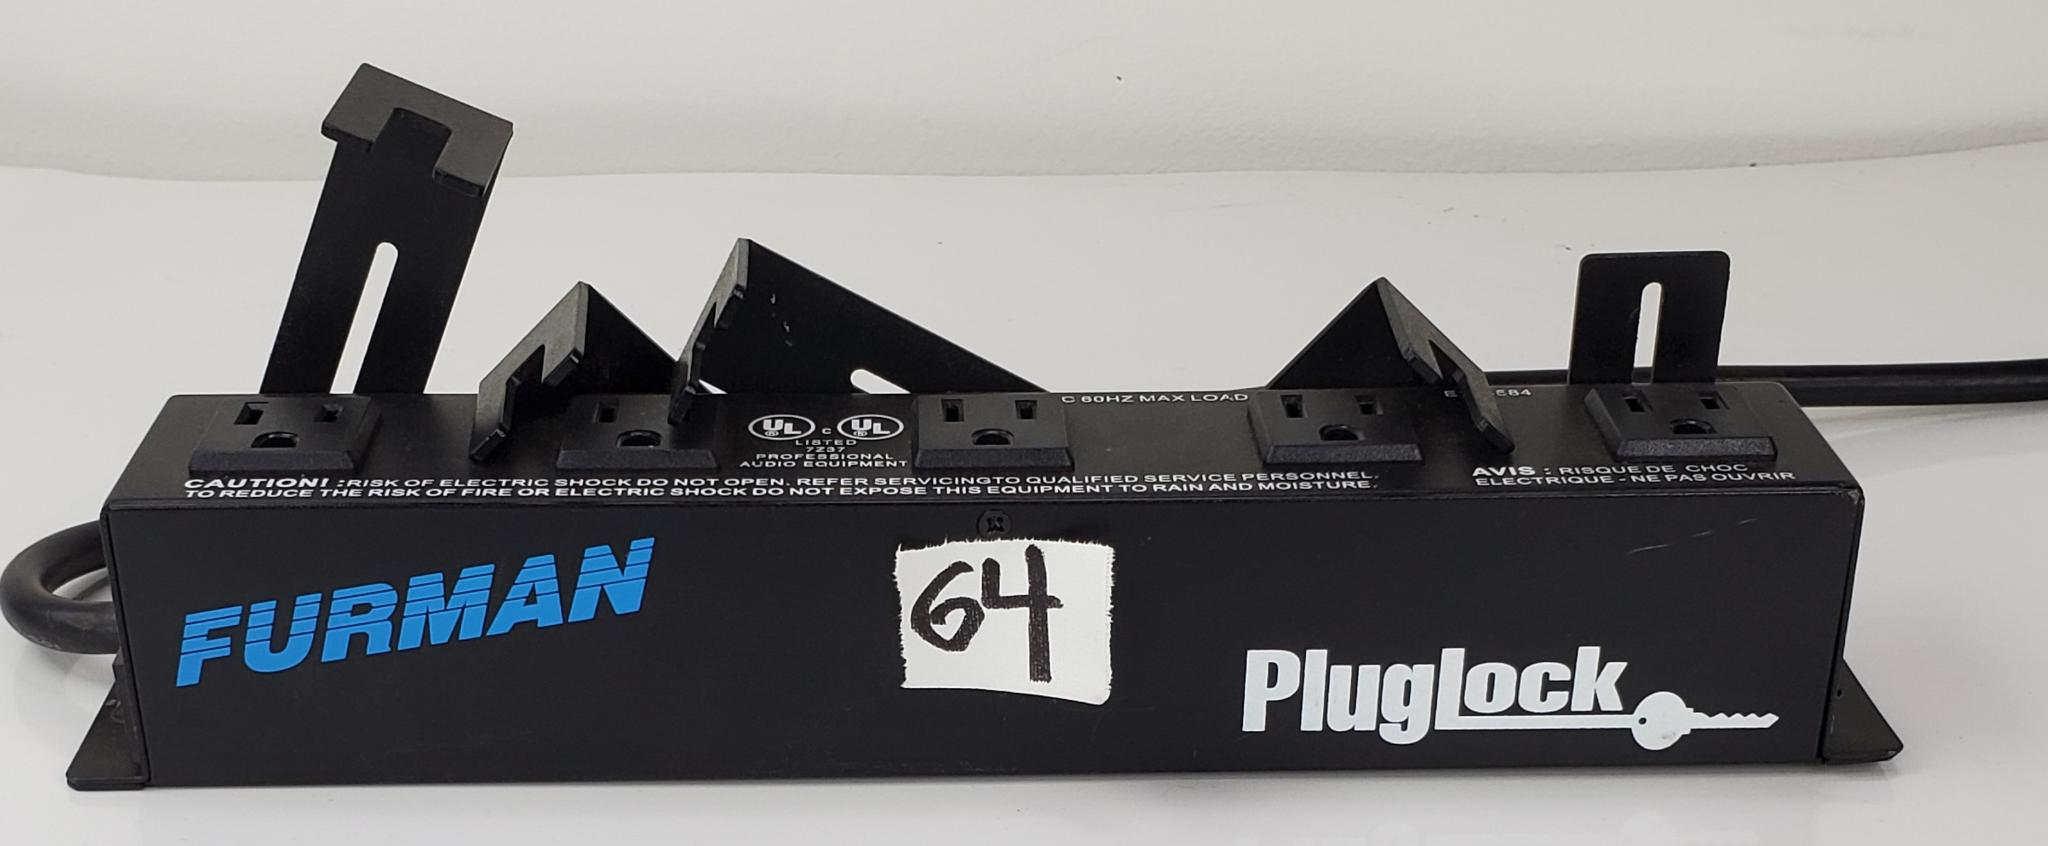 "Featuring the PLUGLOCK 12A Power Distribution Strip (No Surge Protection), with 5 Spaced Outlets from Furman. This power strip has a sturdy and durable design and has been made using all steel construction design, with a heavy-duty 5' (14AWG) three conductor cord. The PLUGLOCK circuit-breaker protected locking outlet strip provides enough wall-wart spacing for five bulky transformers and can be safely mounted out of sight, in the rear of your rack. The secure, adjustable, clamping design can accommodate transformers and plugs from 0.4"" to 2.1"" above each outlet. The clamps lock your transformers and conventional plugs in place, relieving the worry of getting disconnected from the power source"